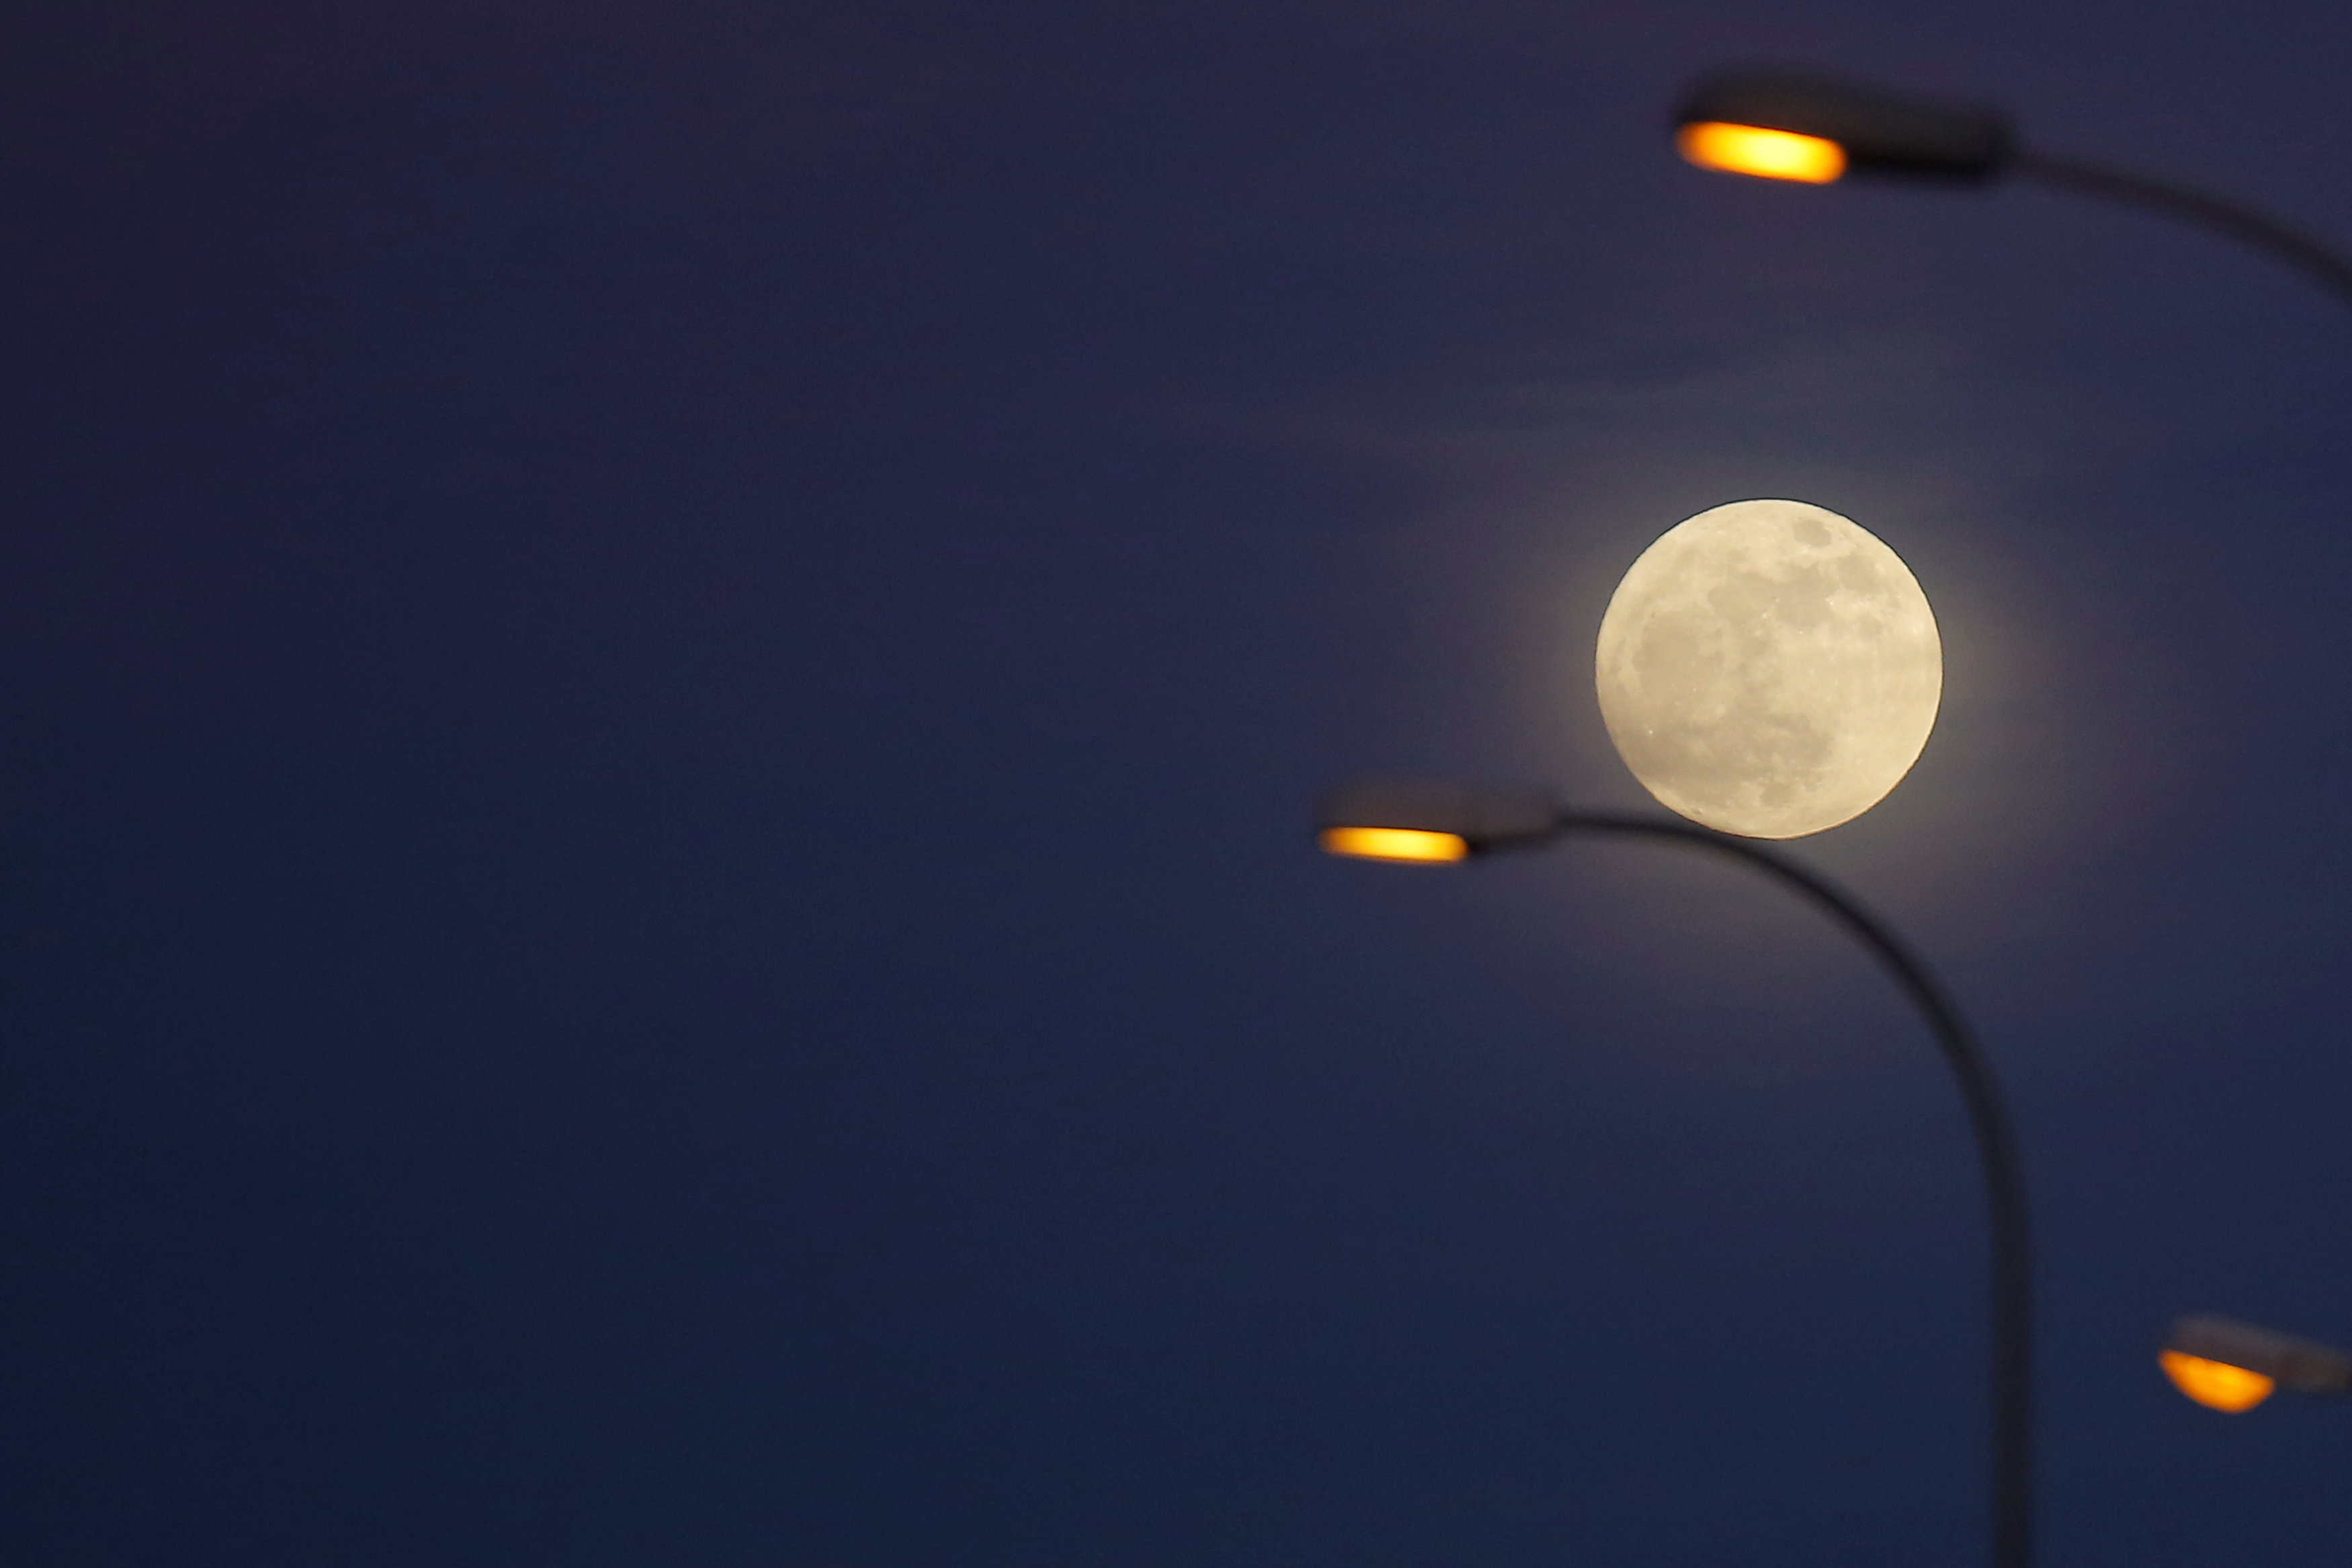 The 'supermoon' full moon is seen rising behind street lights in Ronda